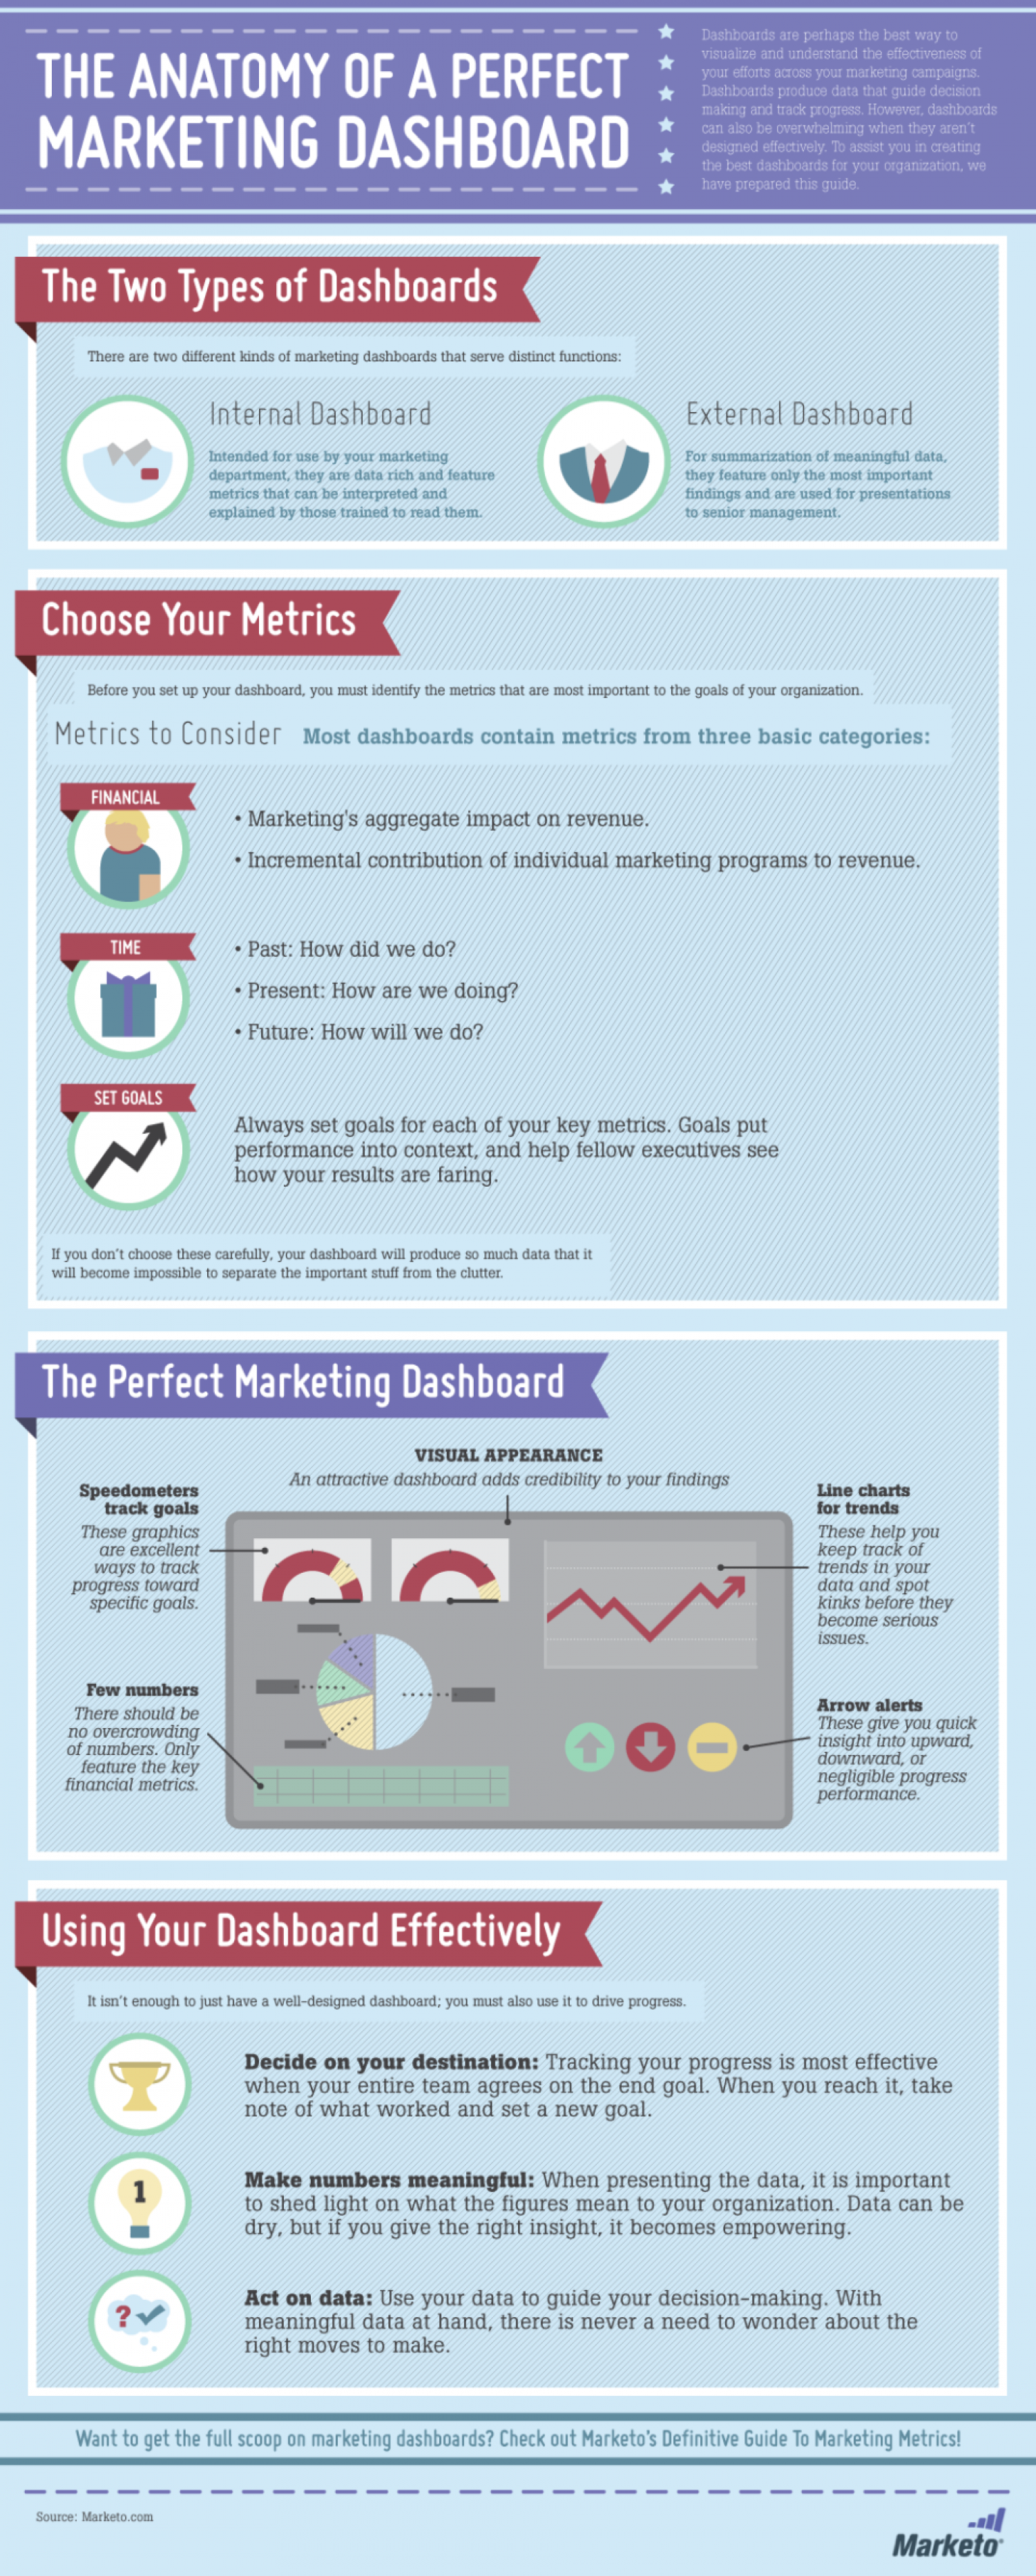 The Anatomy of a Perfect Marketing Dashboard | Visual.ly